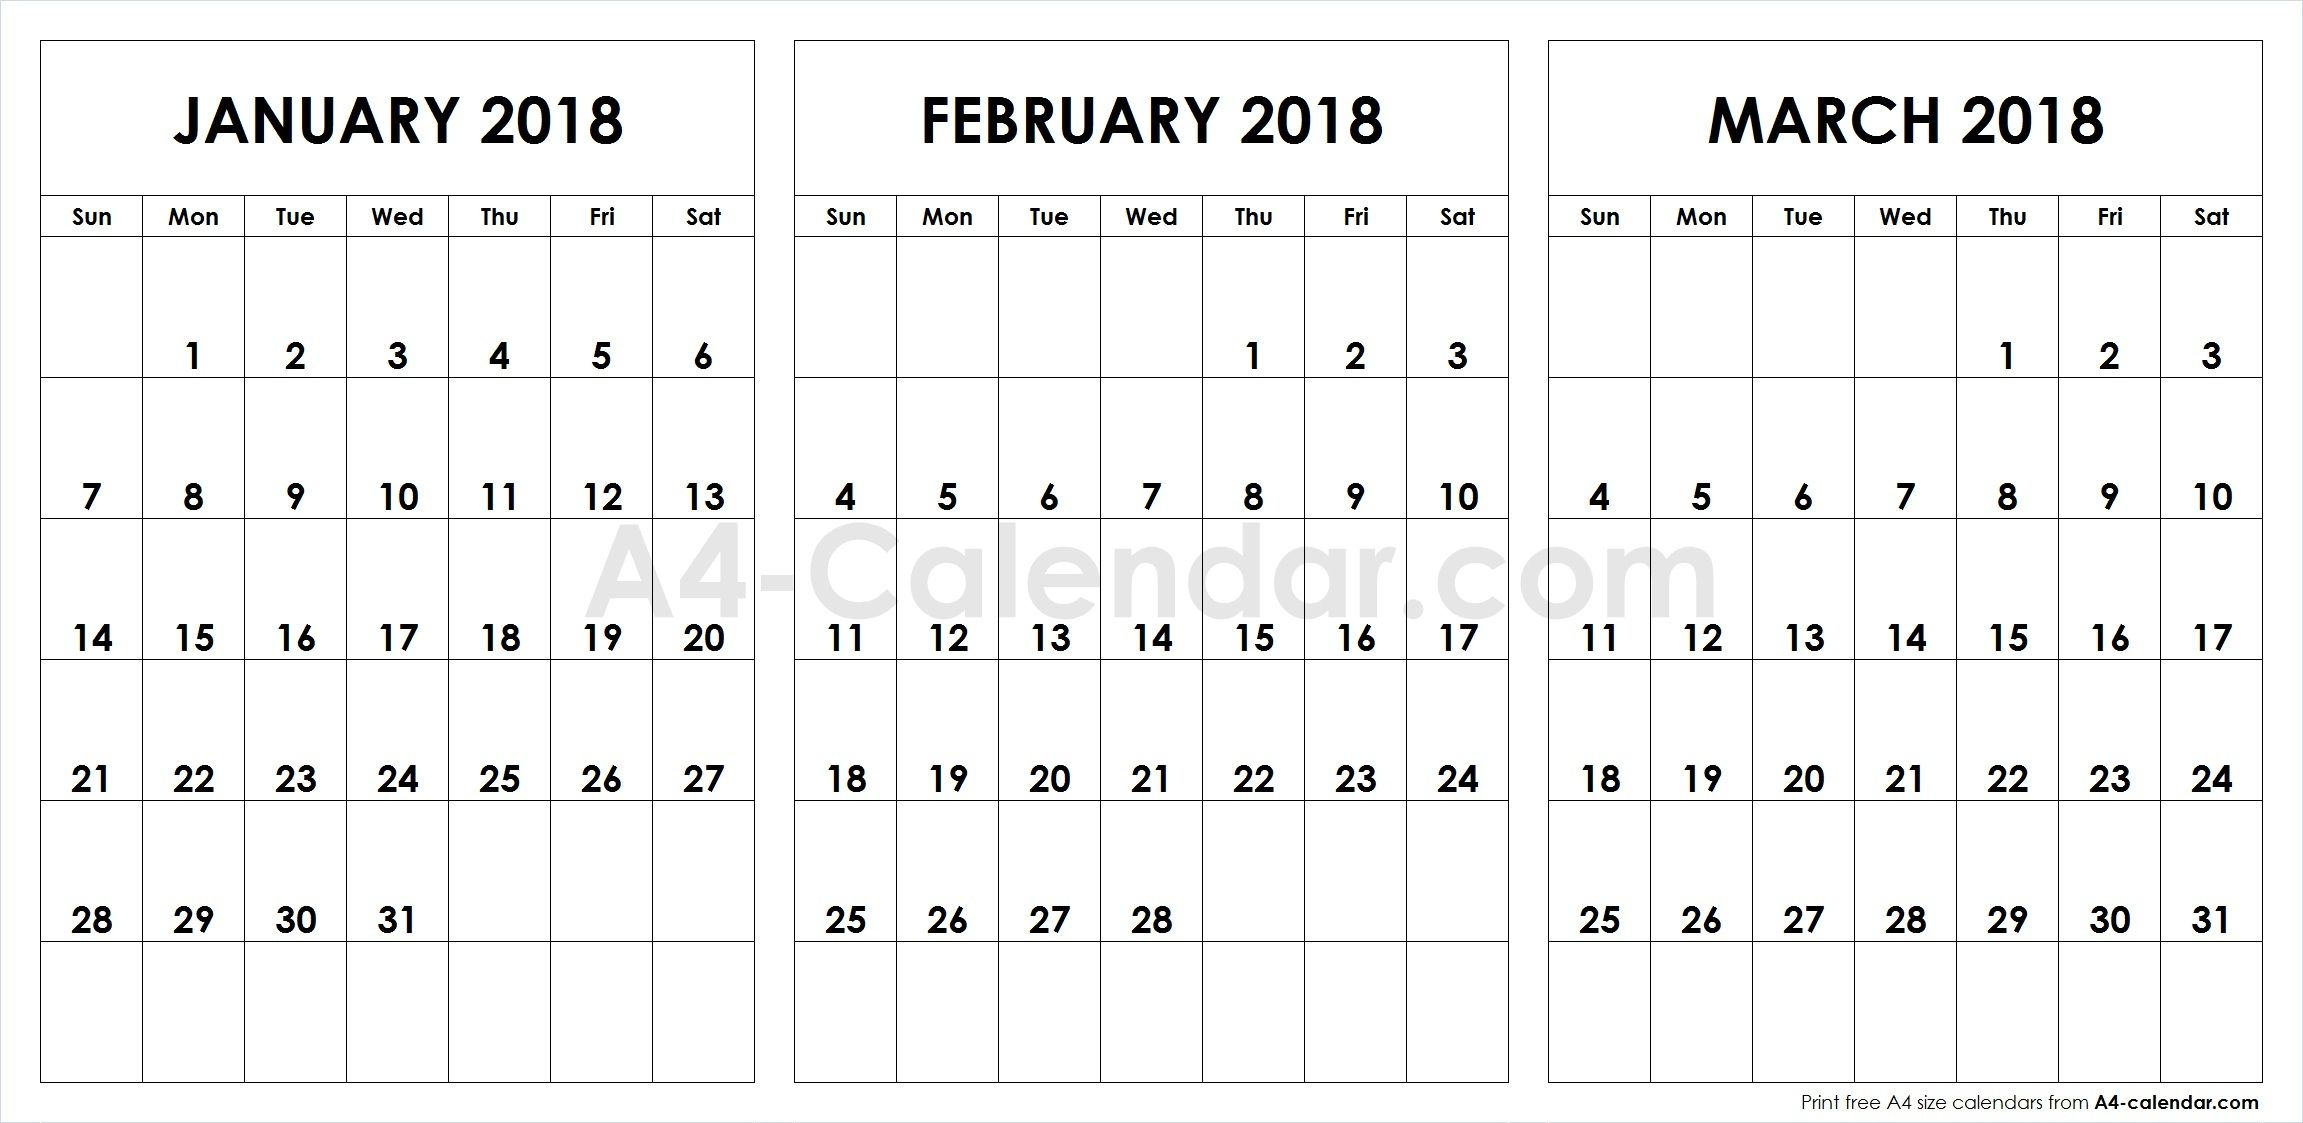 graphic about Printfree Com Calender called Print Totally free Blank January February March 2018 A4 Calendar